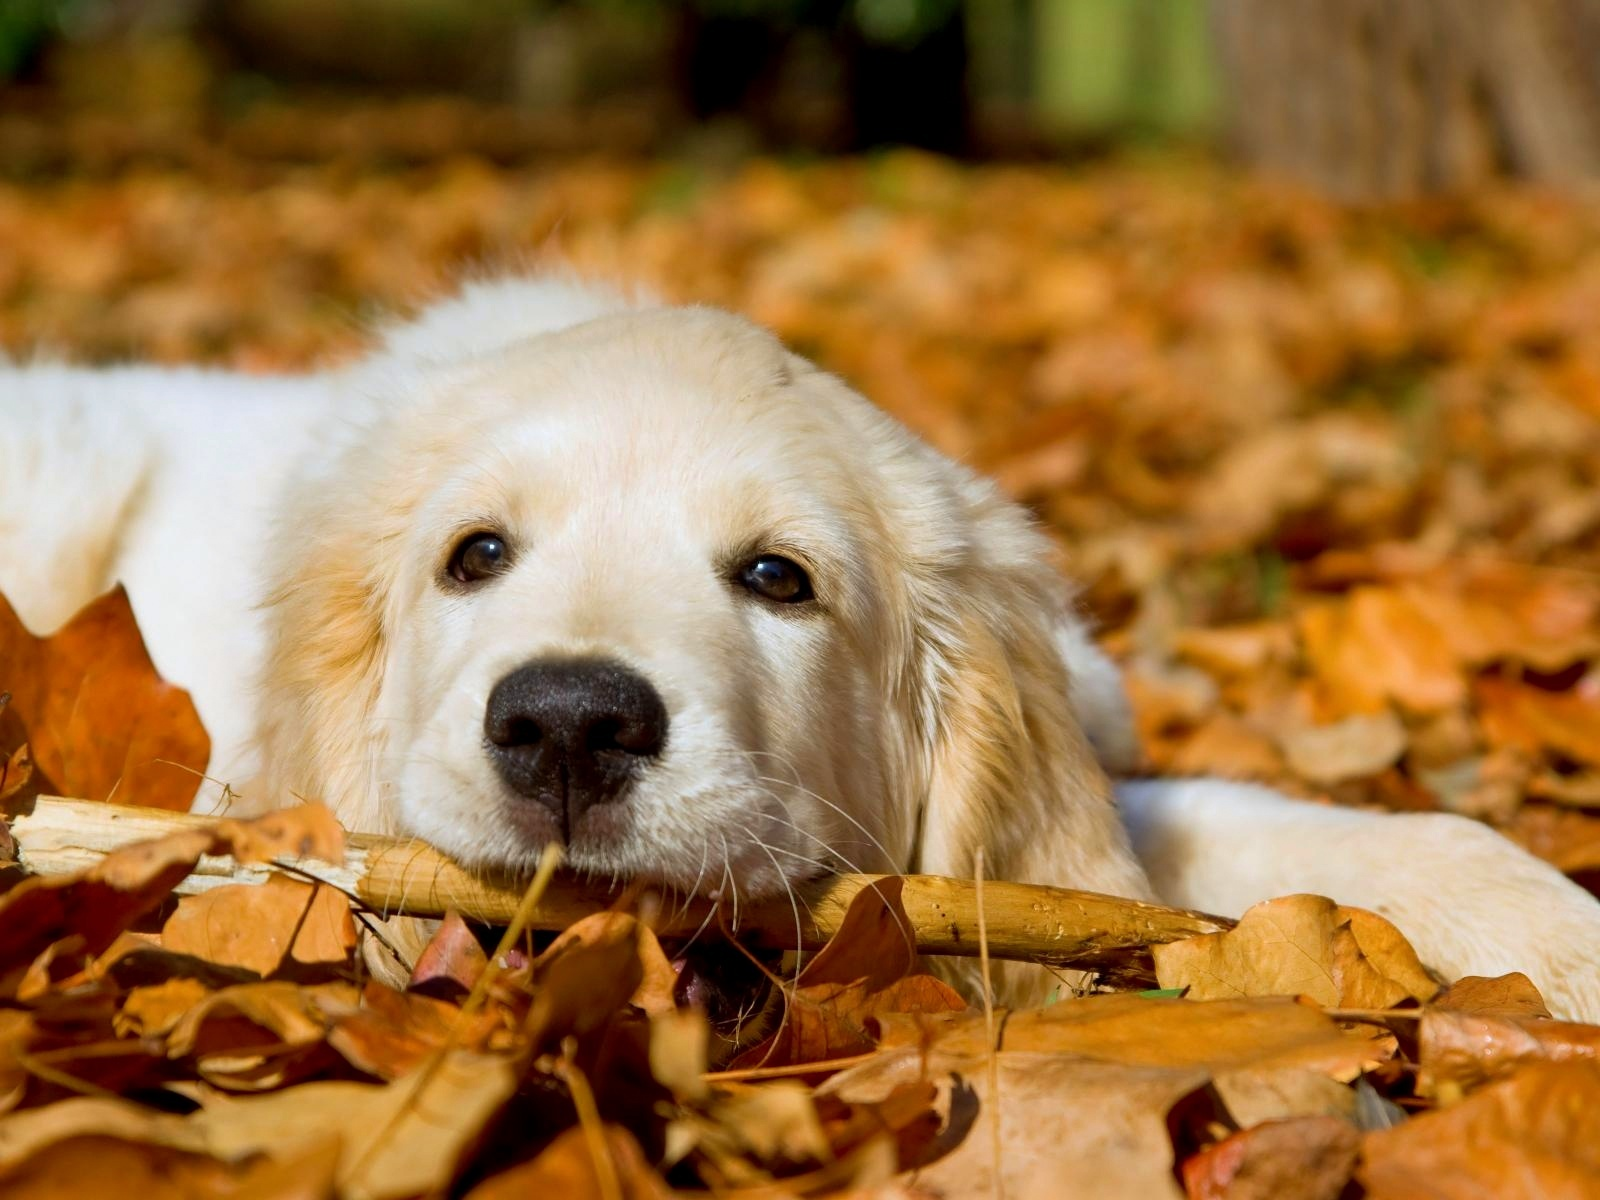 Cat And Dog Wallpapers High Quality Download Free 1600x1200